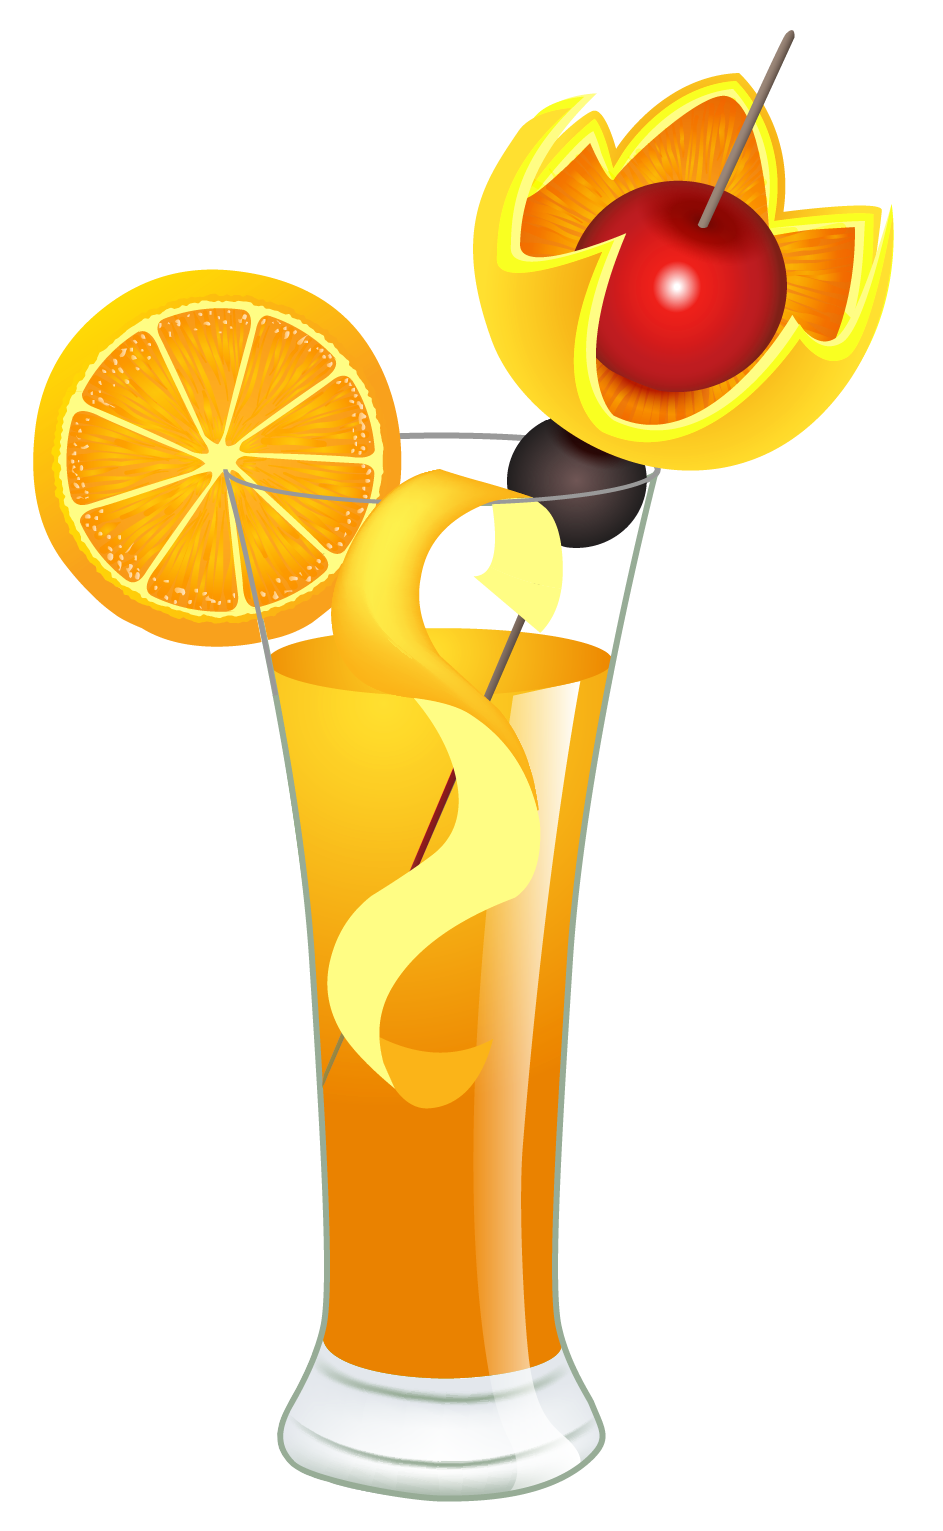 Drink clipart png. Orange cocktail picture gallery